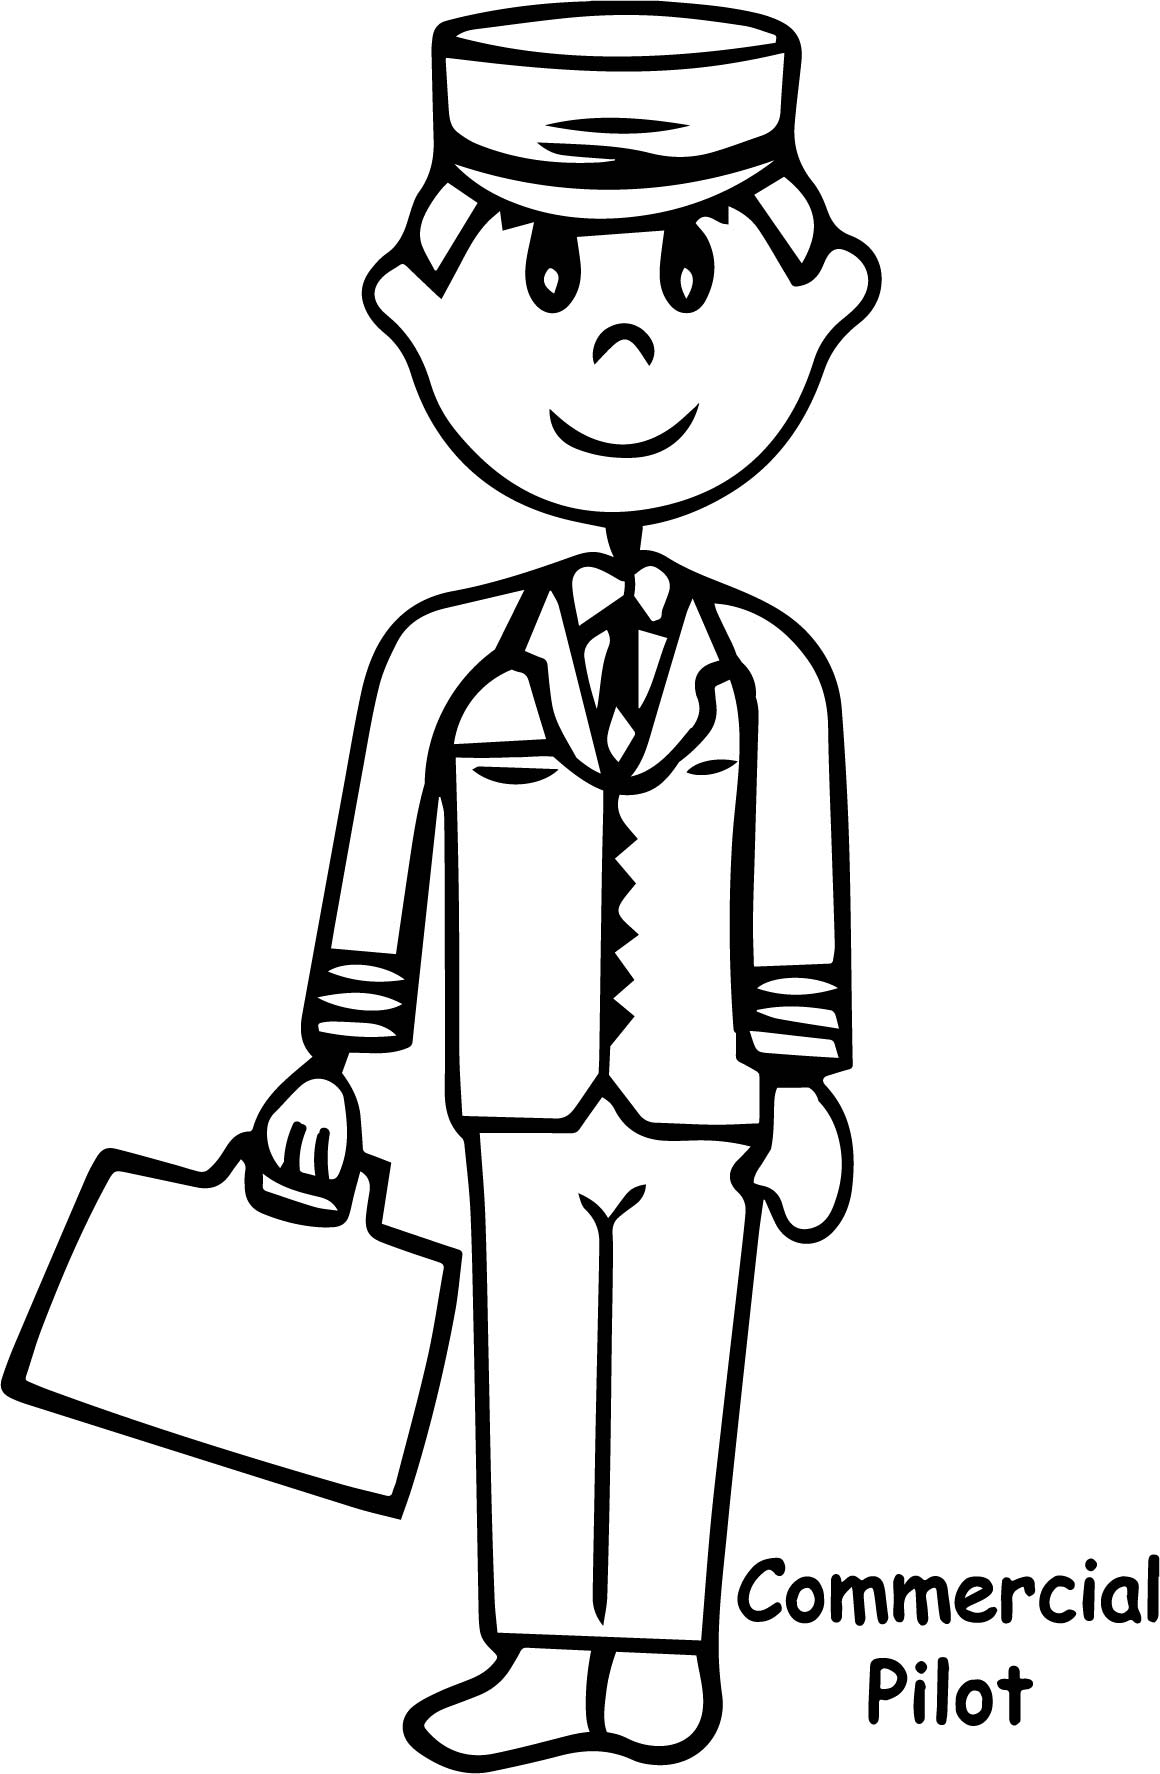 Illustration Of A Commercial Pilot Coloring Page